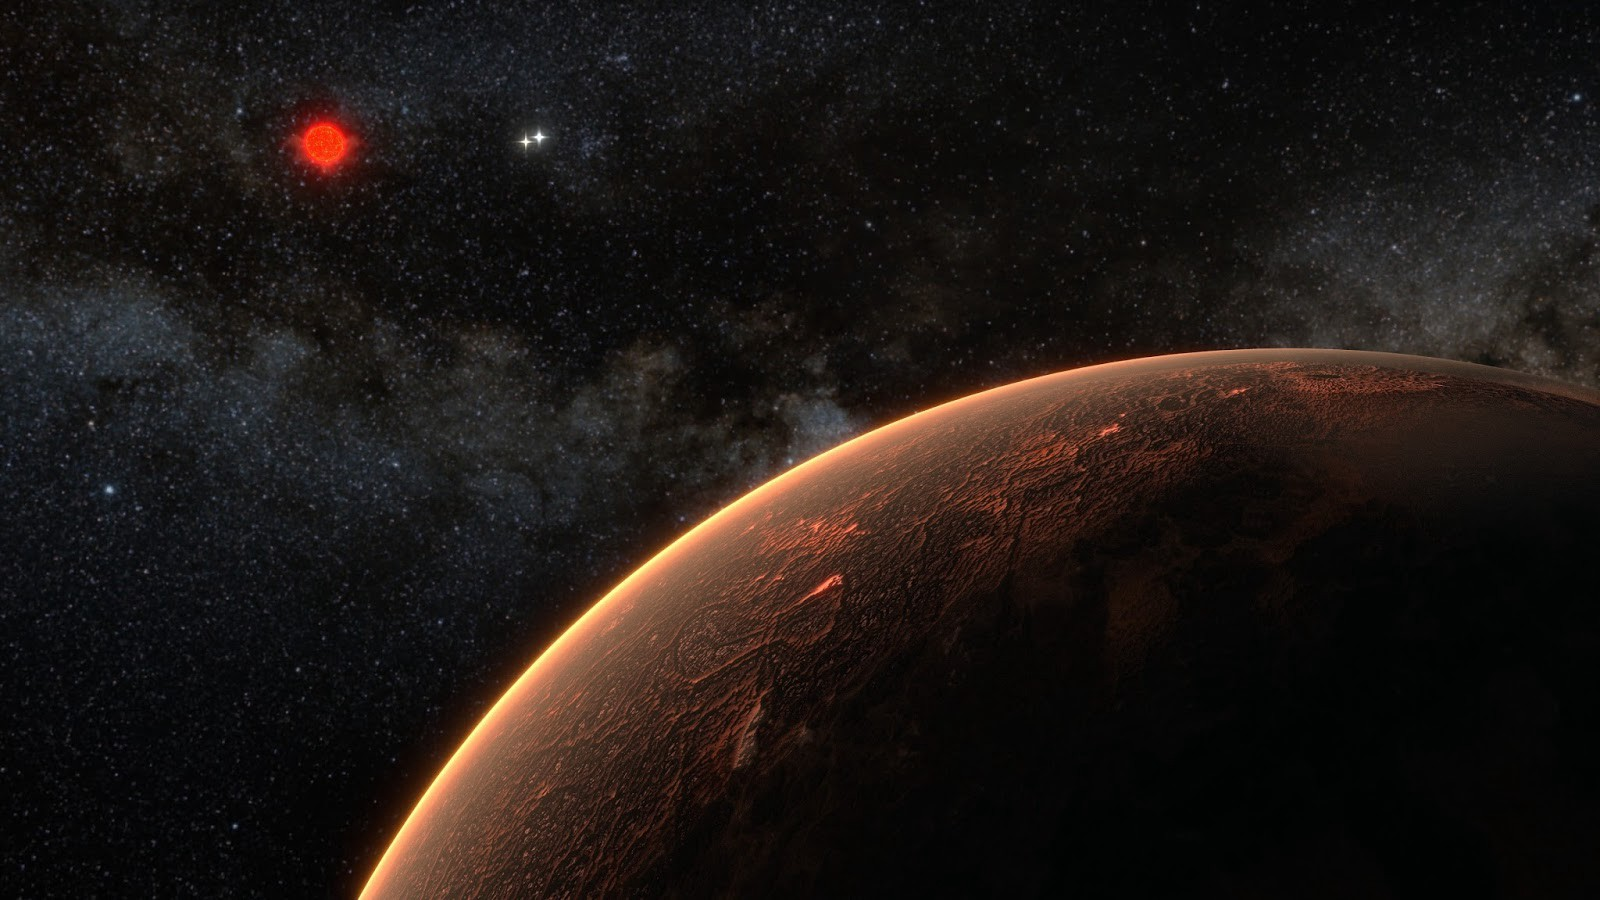 Astronomers investigating possible alien communication from Proxima Ce